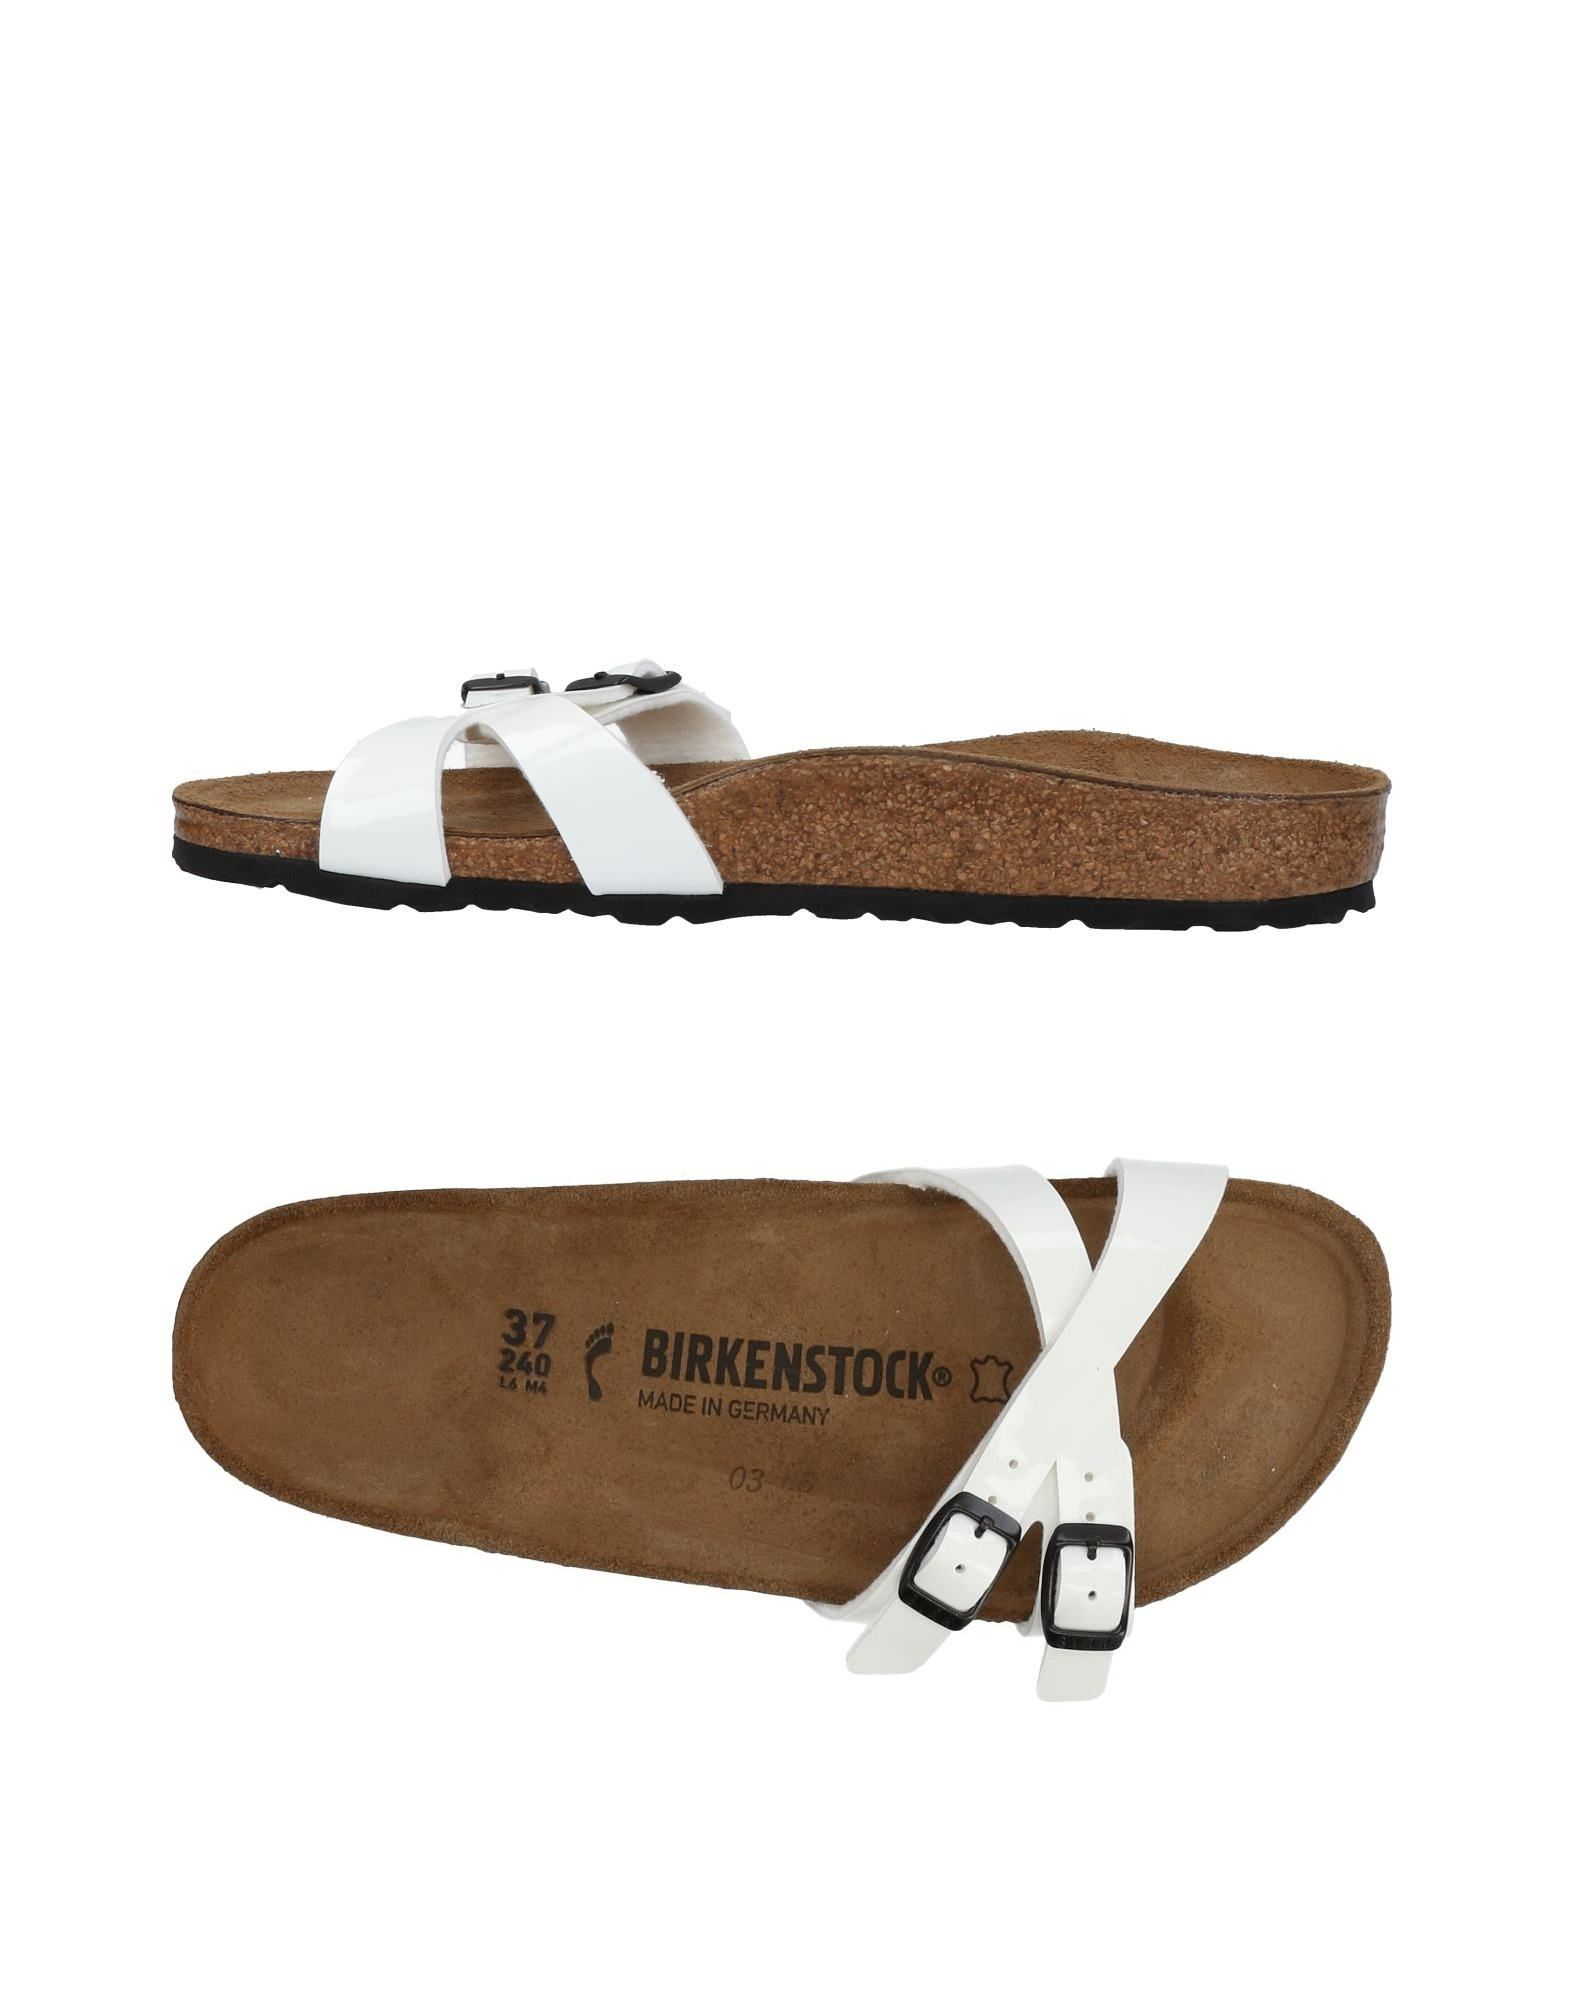 brand new 7b964 93bc2 birkenstock sandals